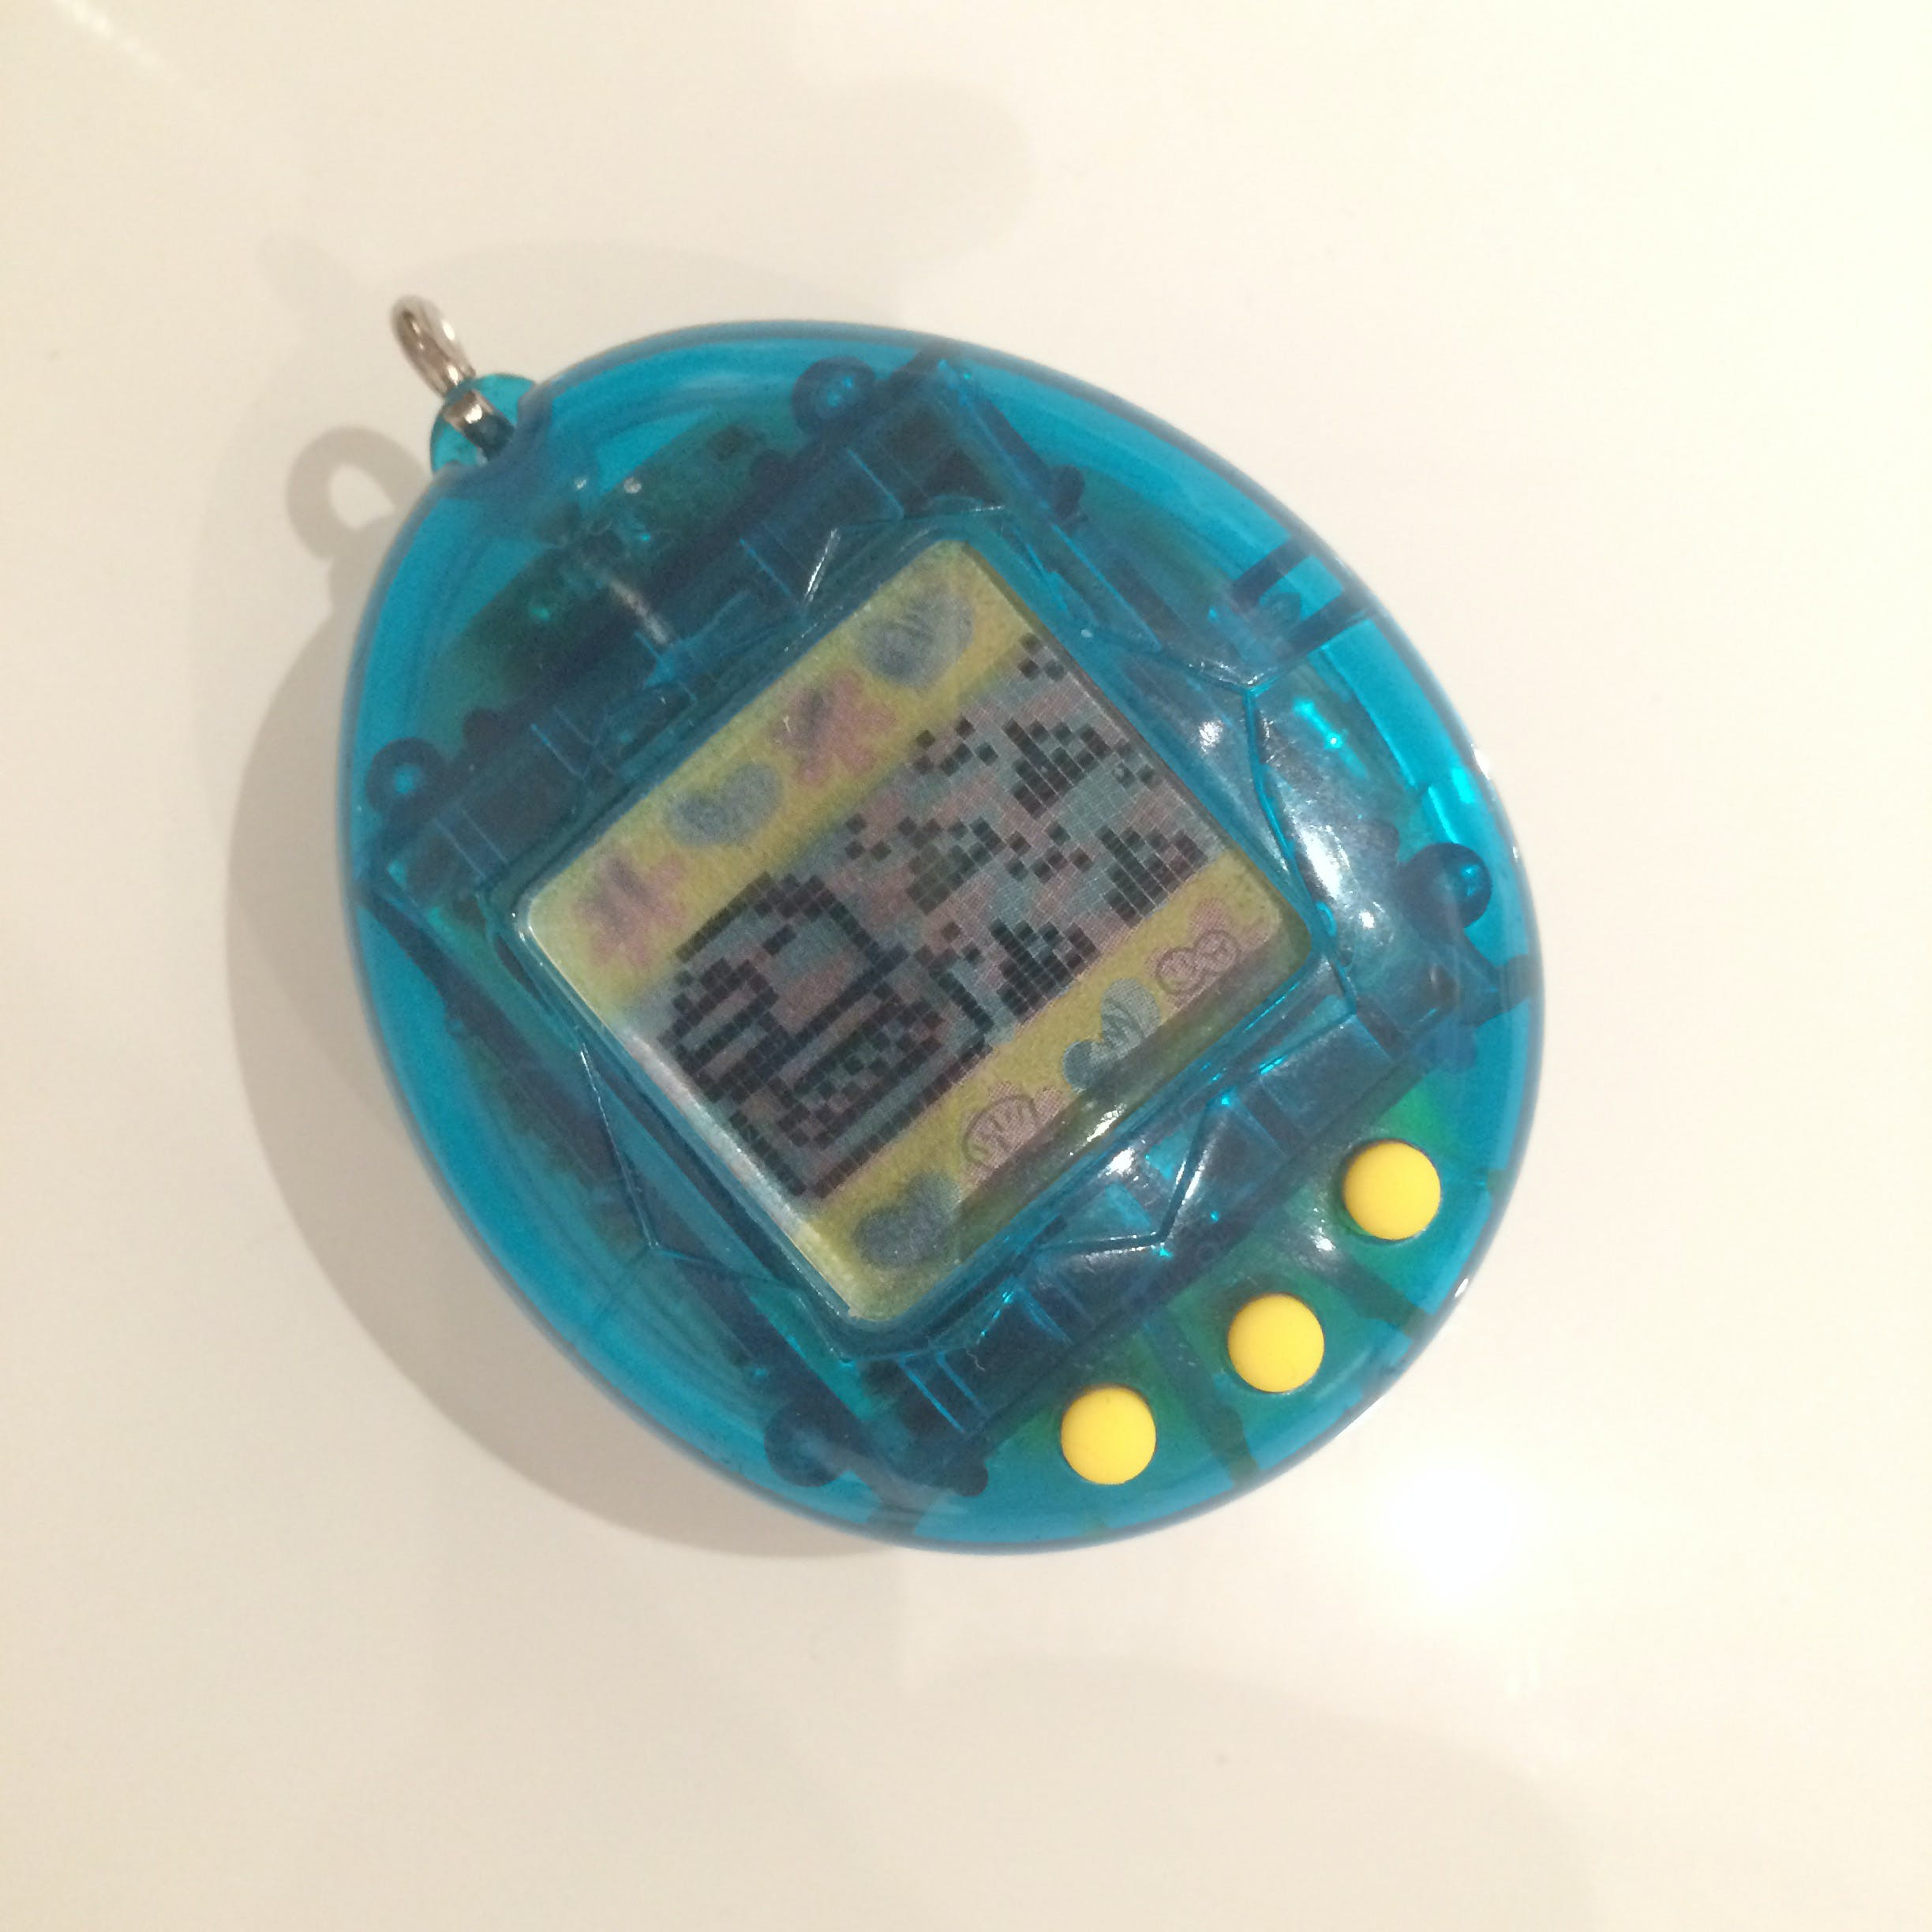 The life and death of Tamagotchi and the virtual pet